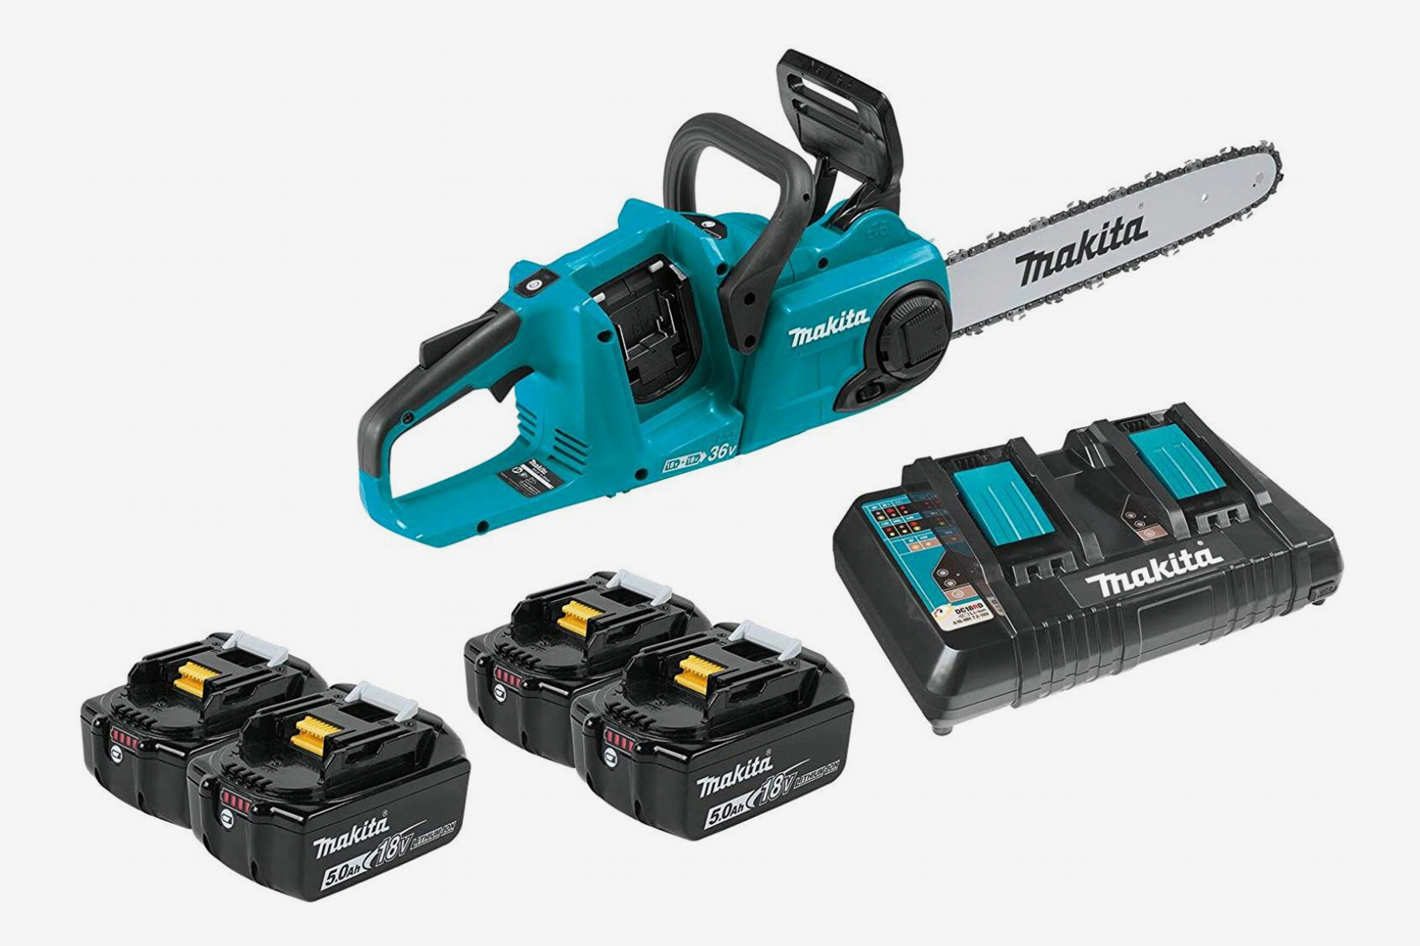 Makita XCU03PT1 Lithium-Ion Brushless Cordless 14-Inch Chainsaw Kit with Four Batteries